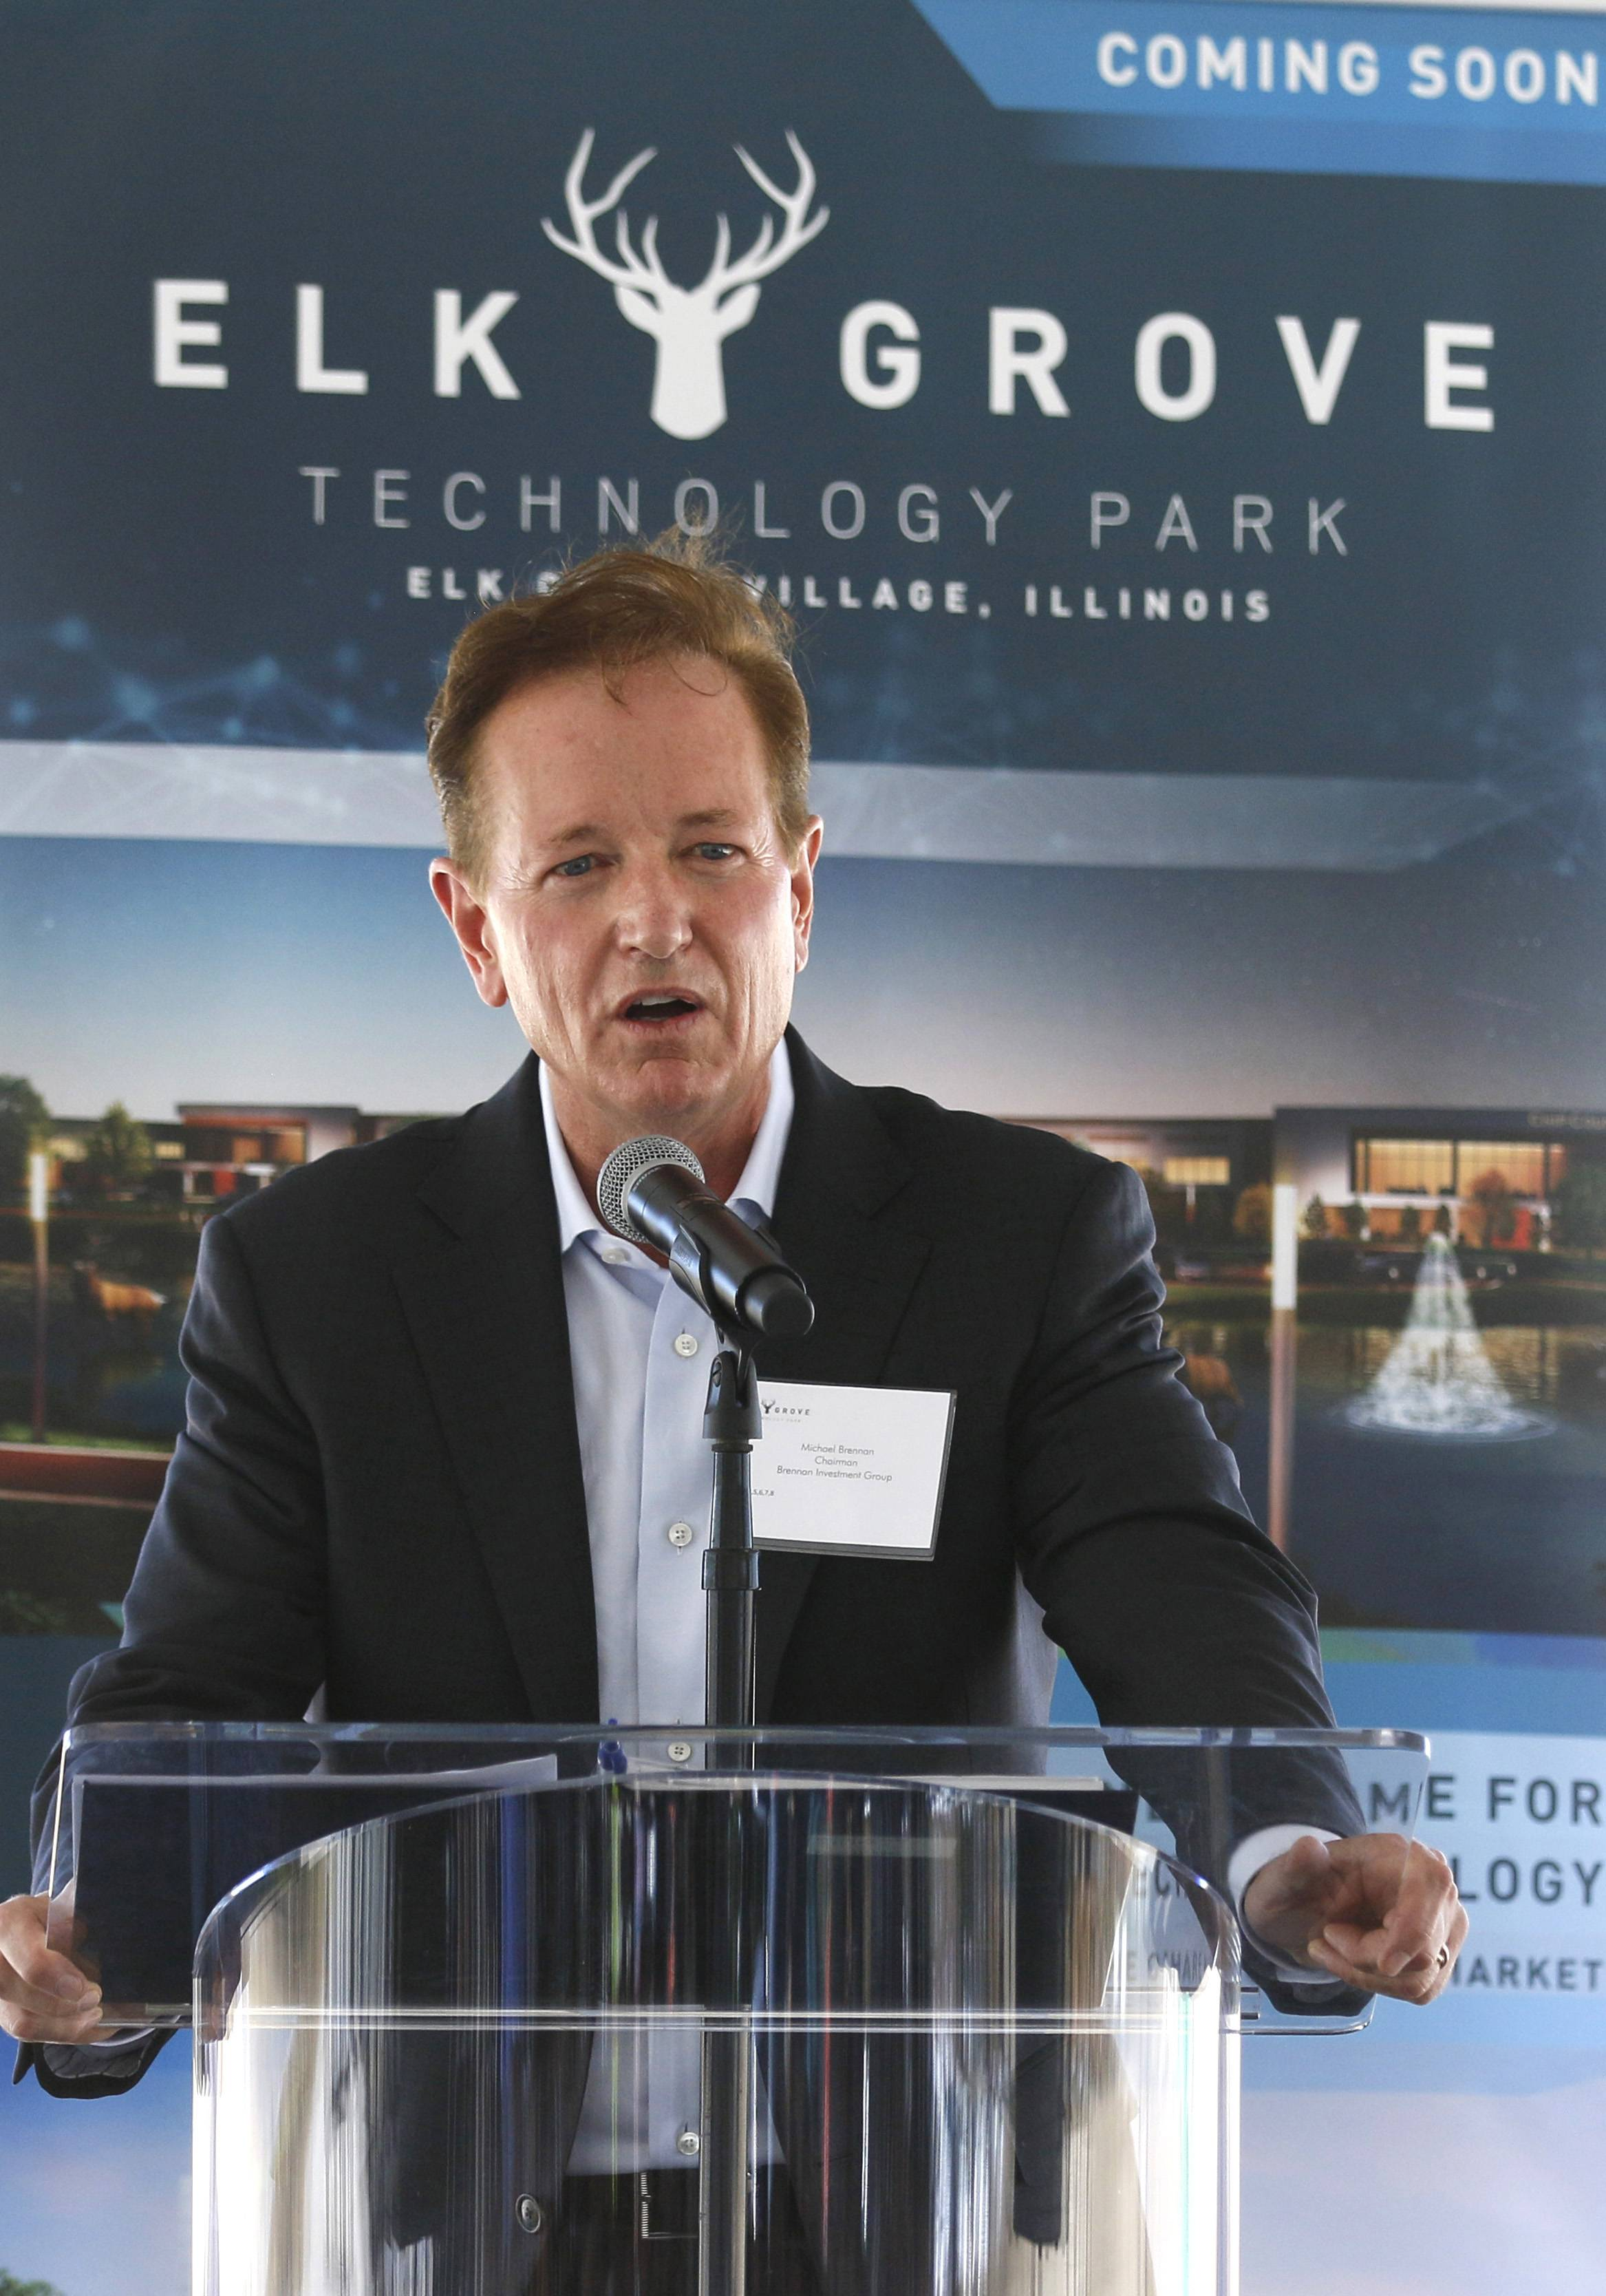 Mike Brennan, chairman of the Brennan Investment Group, is bringing a contingent of employees to the Makers Wanted Bahamas Bowl. His firm is developing the $1 billion Elk Grove Technology Park on the former Busse Farm.